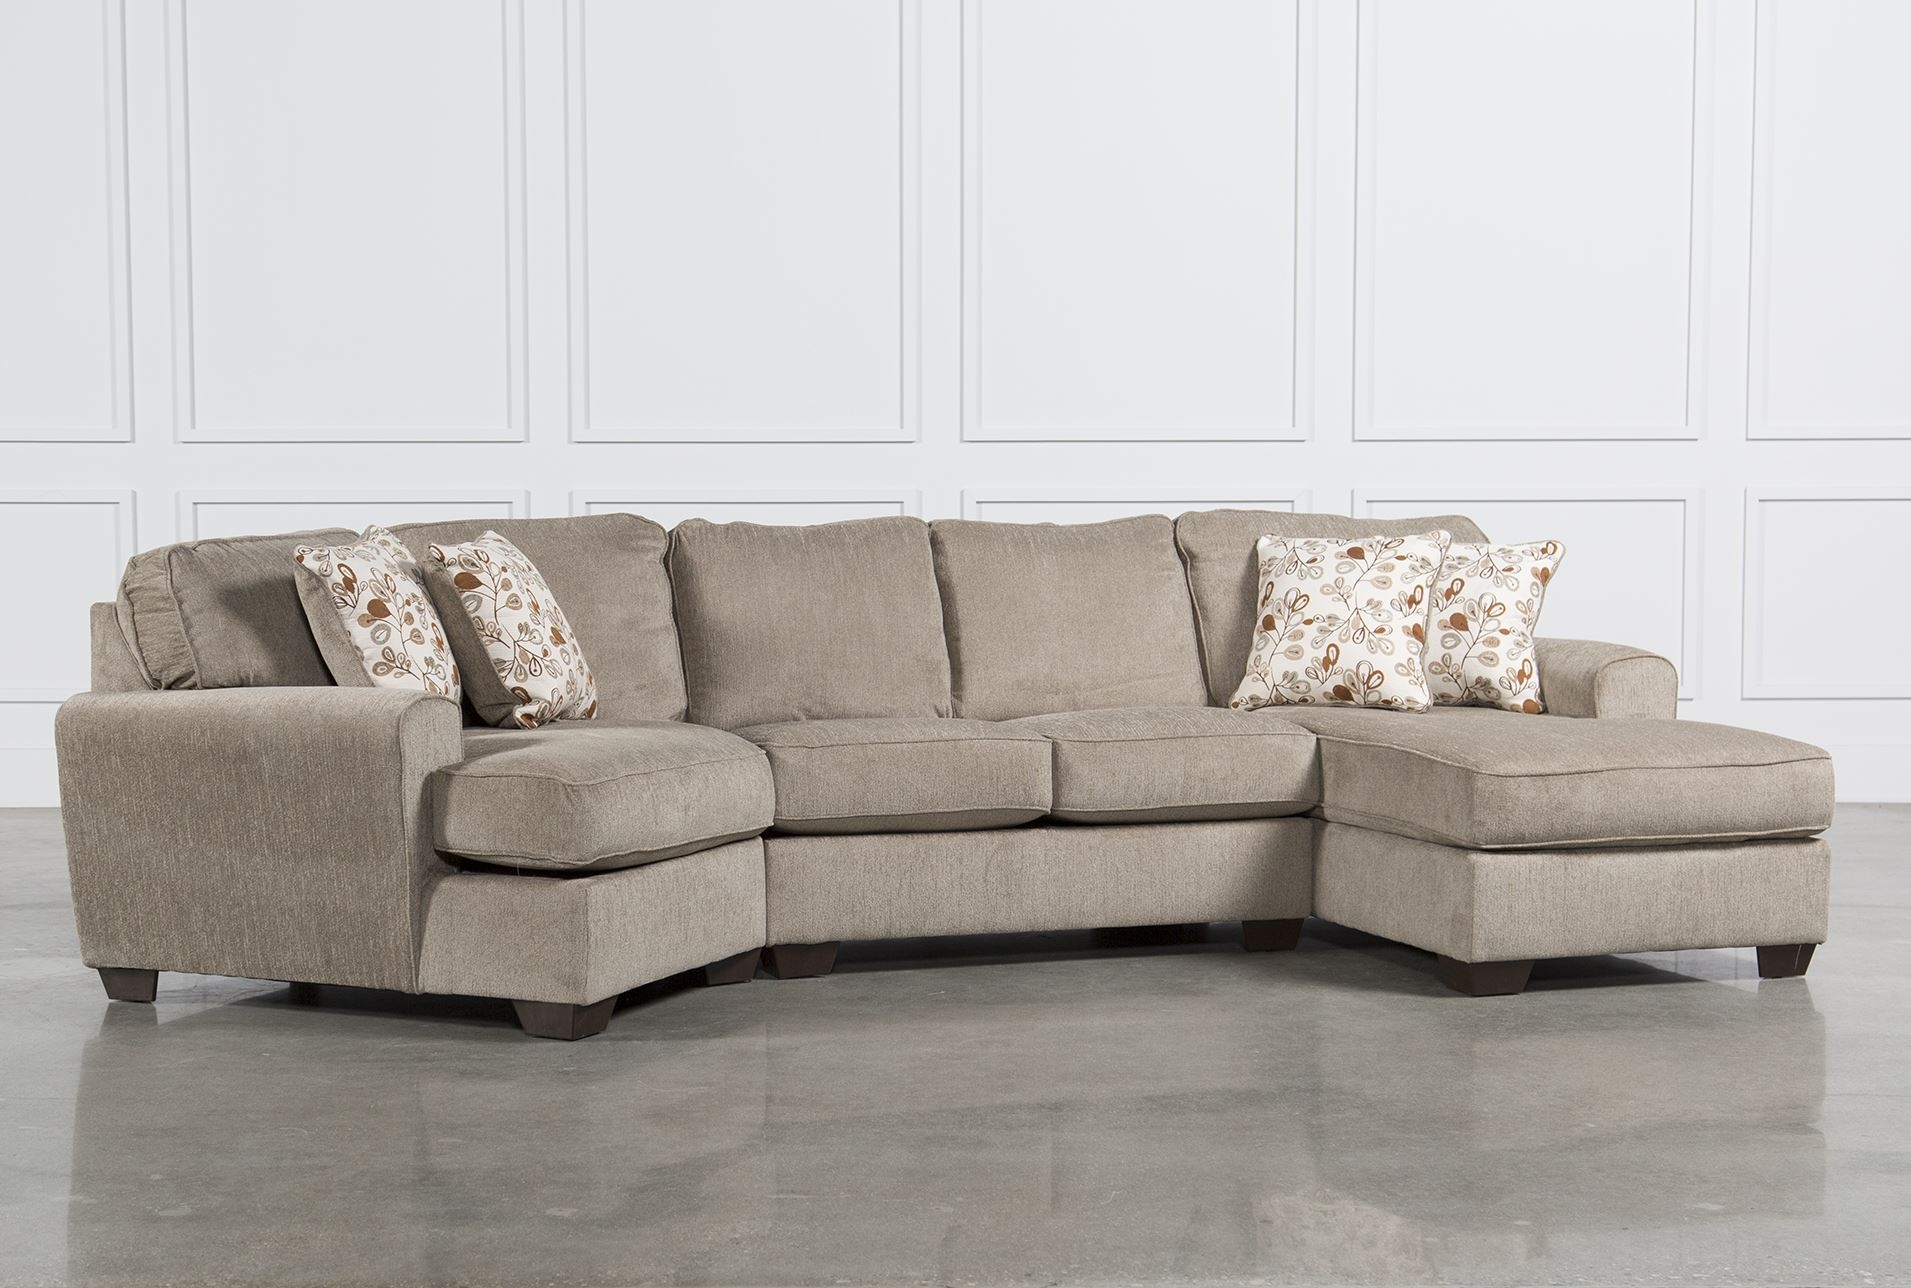 sofas at wayfair ebay used corner sofa bed 12 ideas of angled chaise